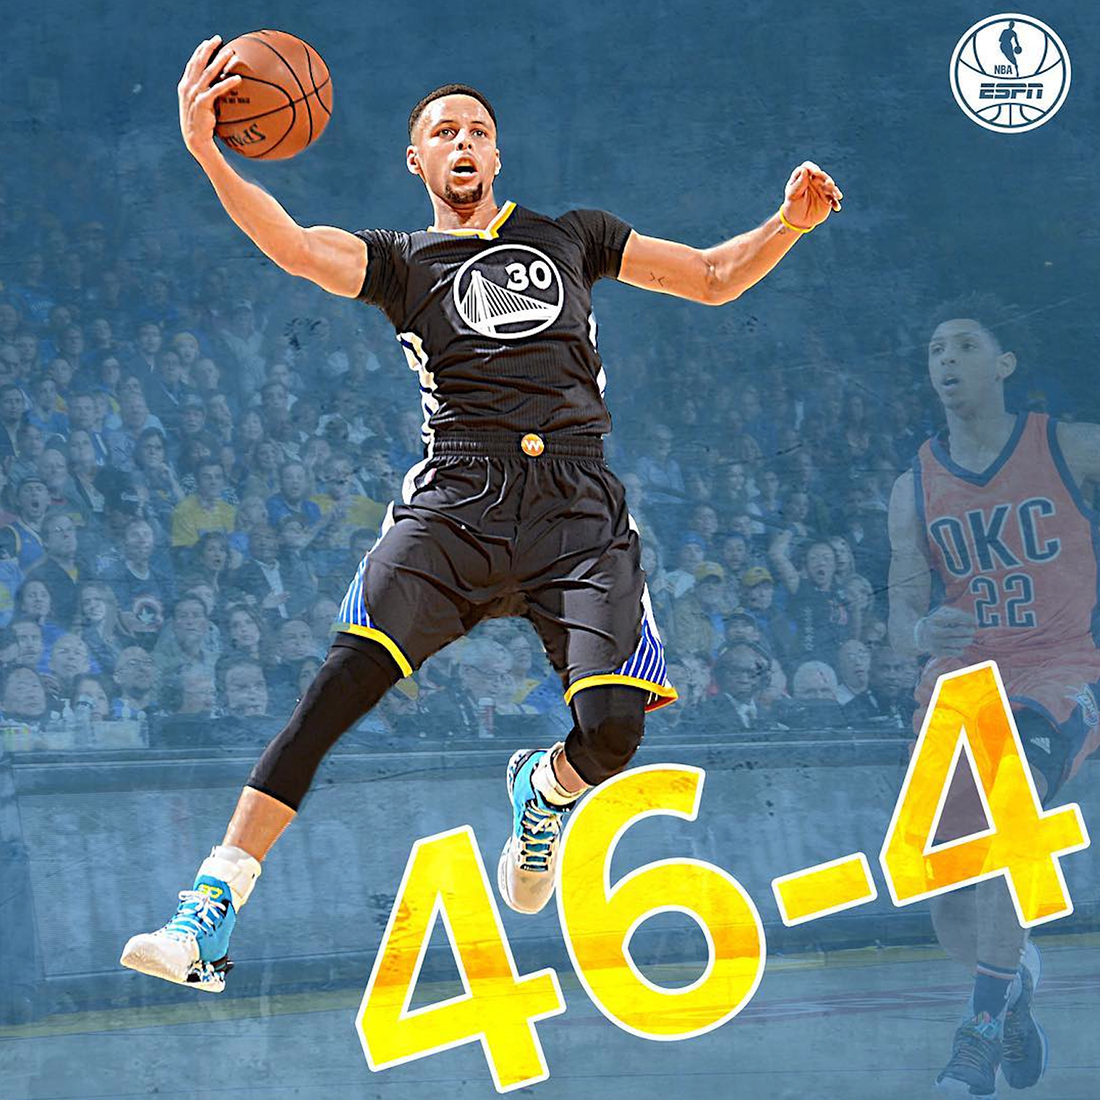 Stephen Curry y los warriors siguen haciendo historia